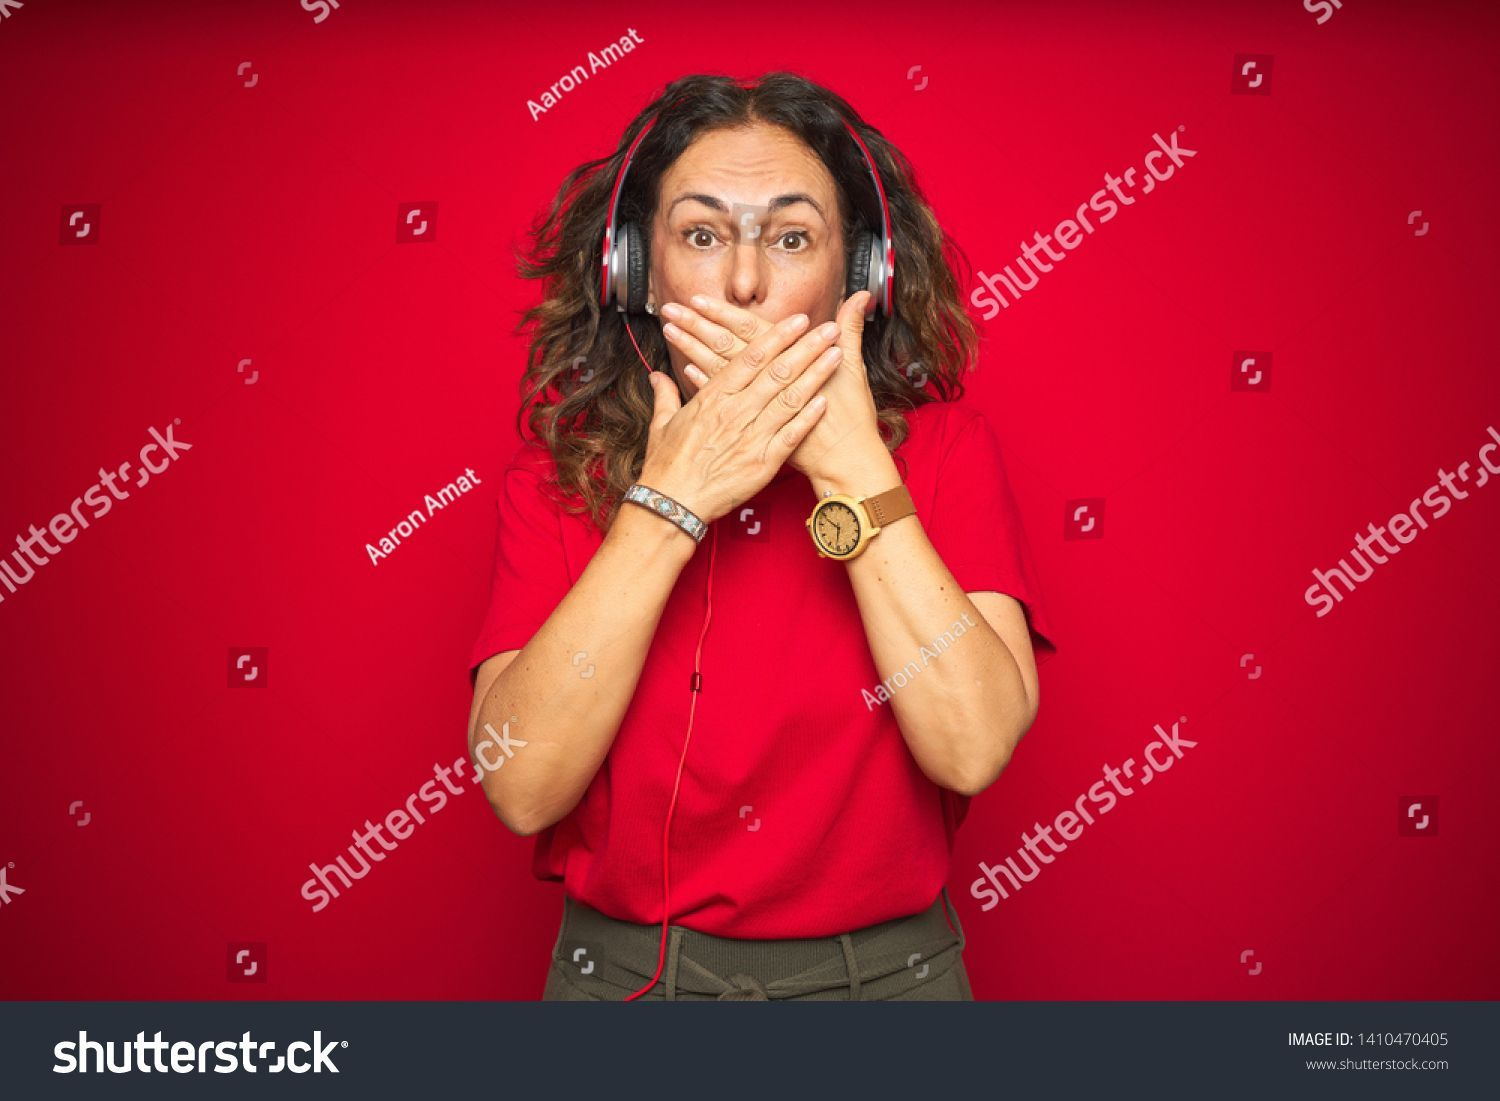 Middle age senior woman wearing headphones listening to music over red isolated